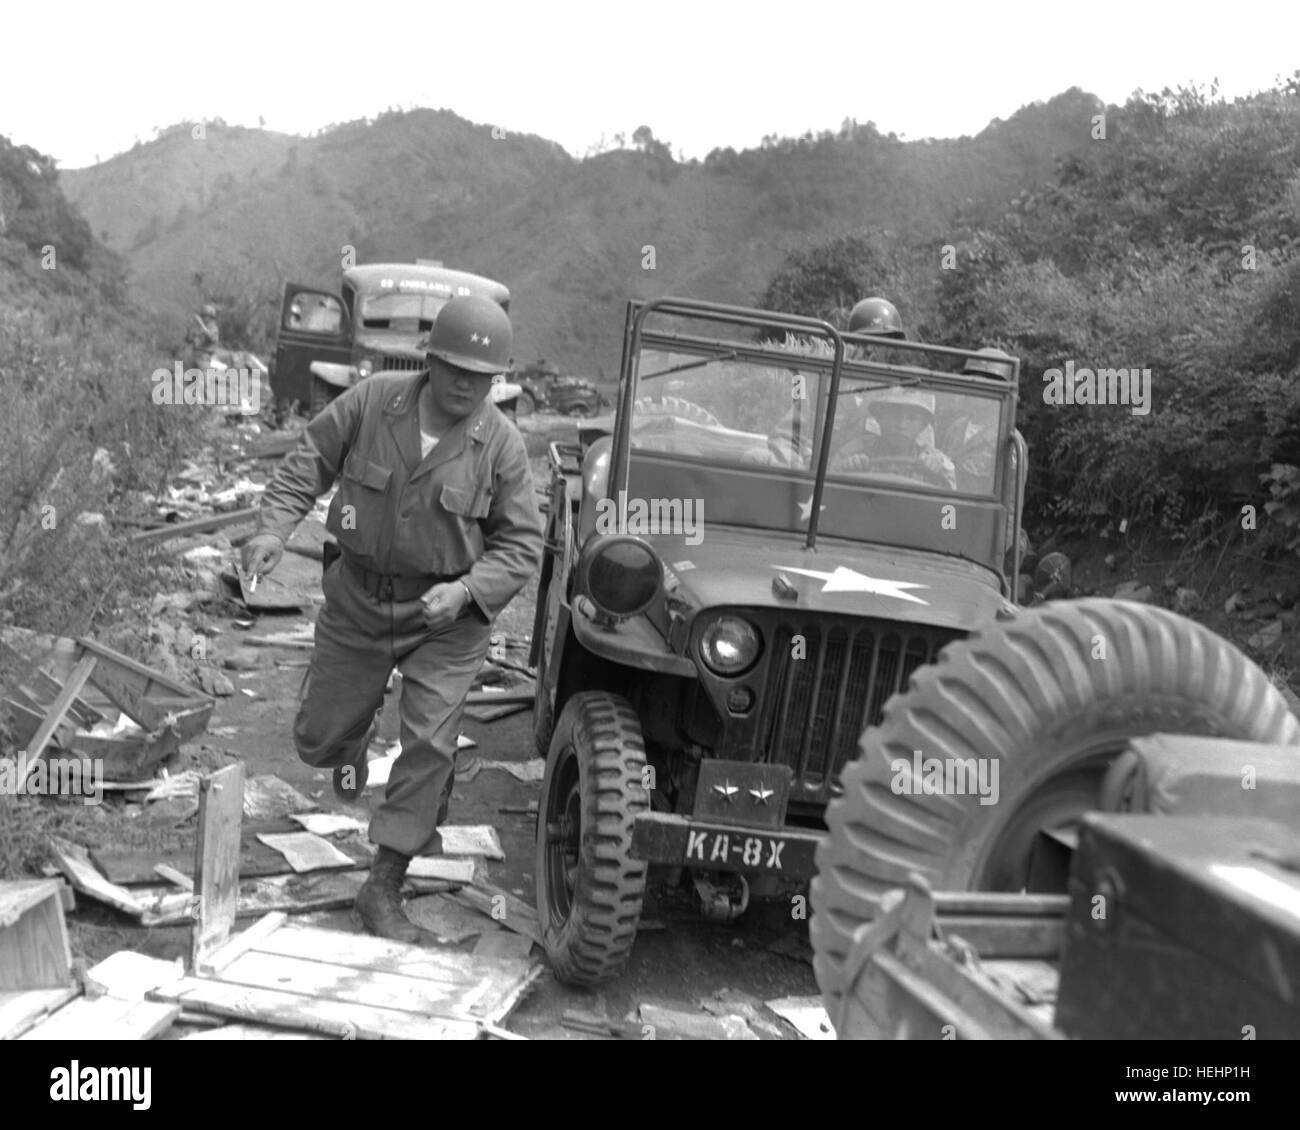 Mortar squad stock photos mortar squad stock images alamy - Div in div position ...